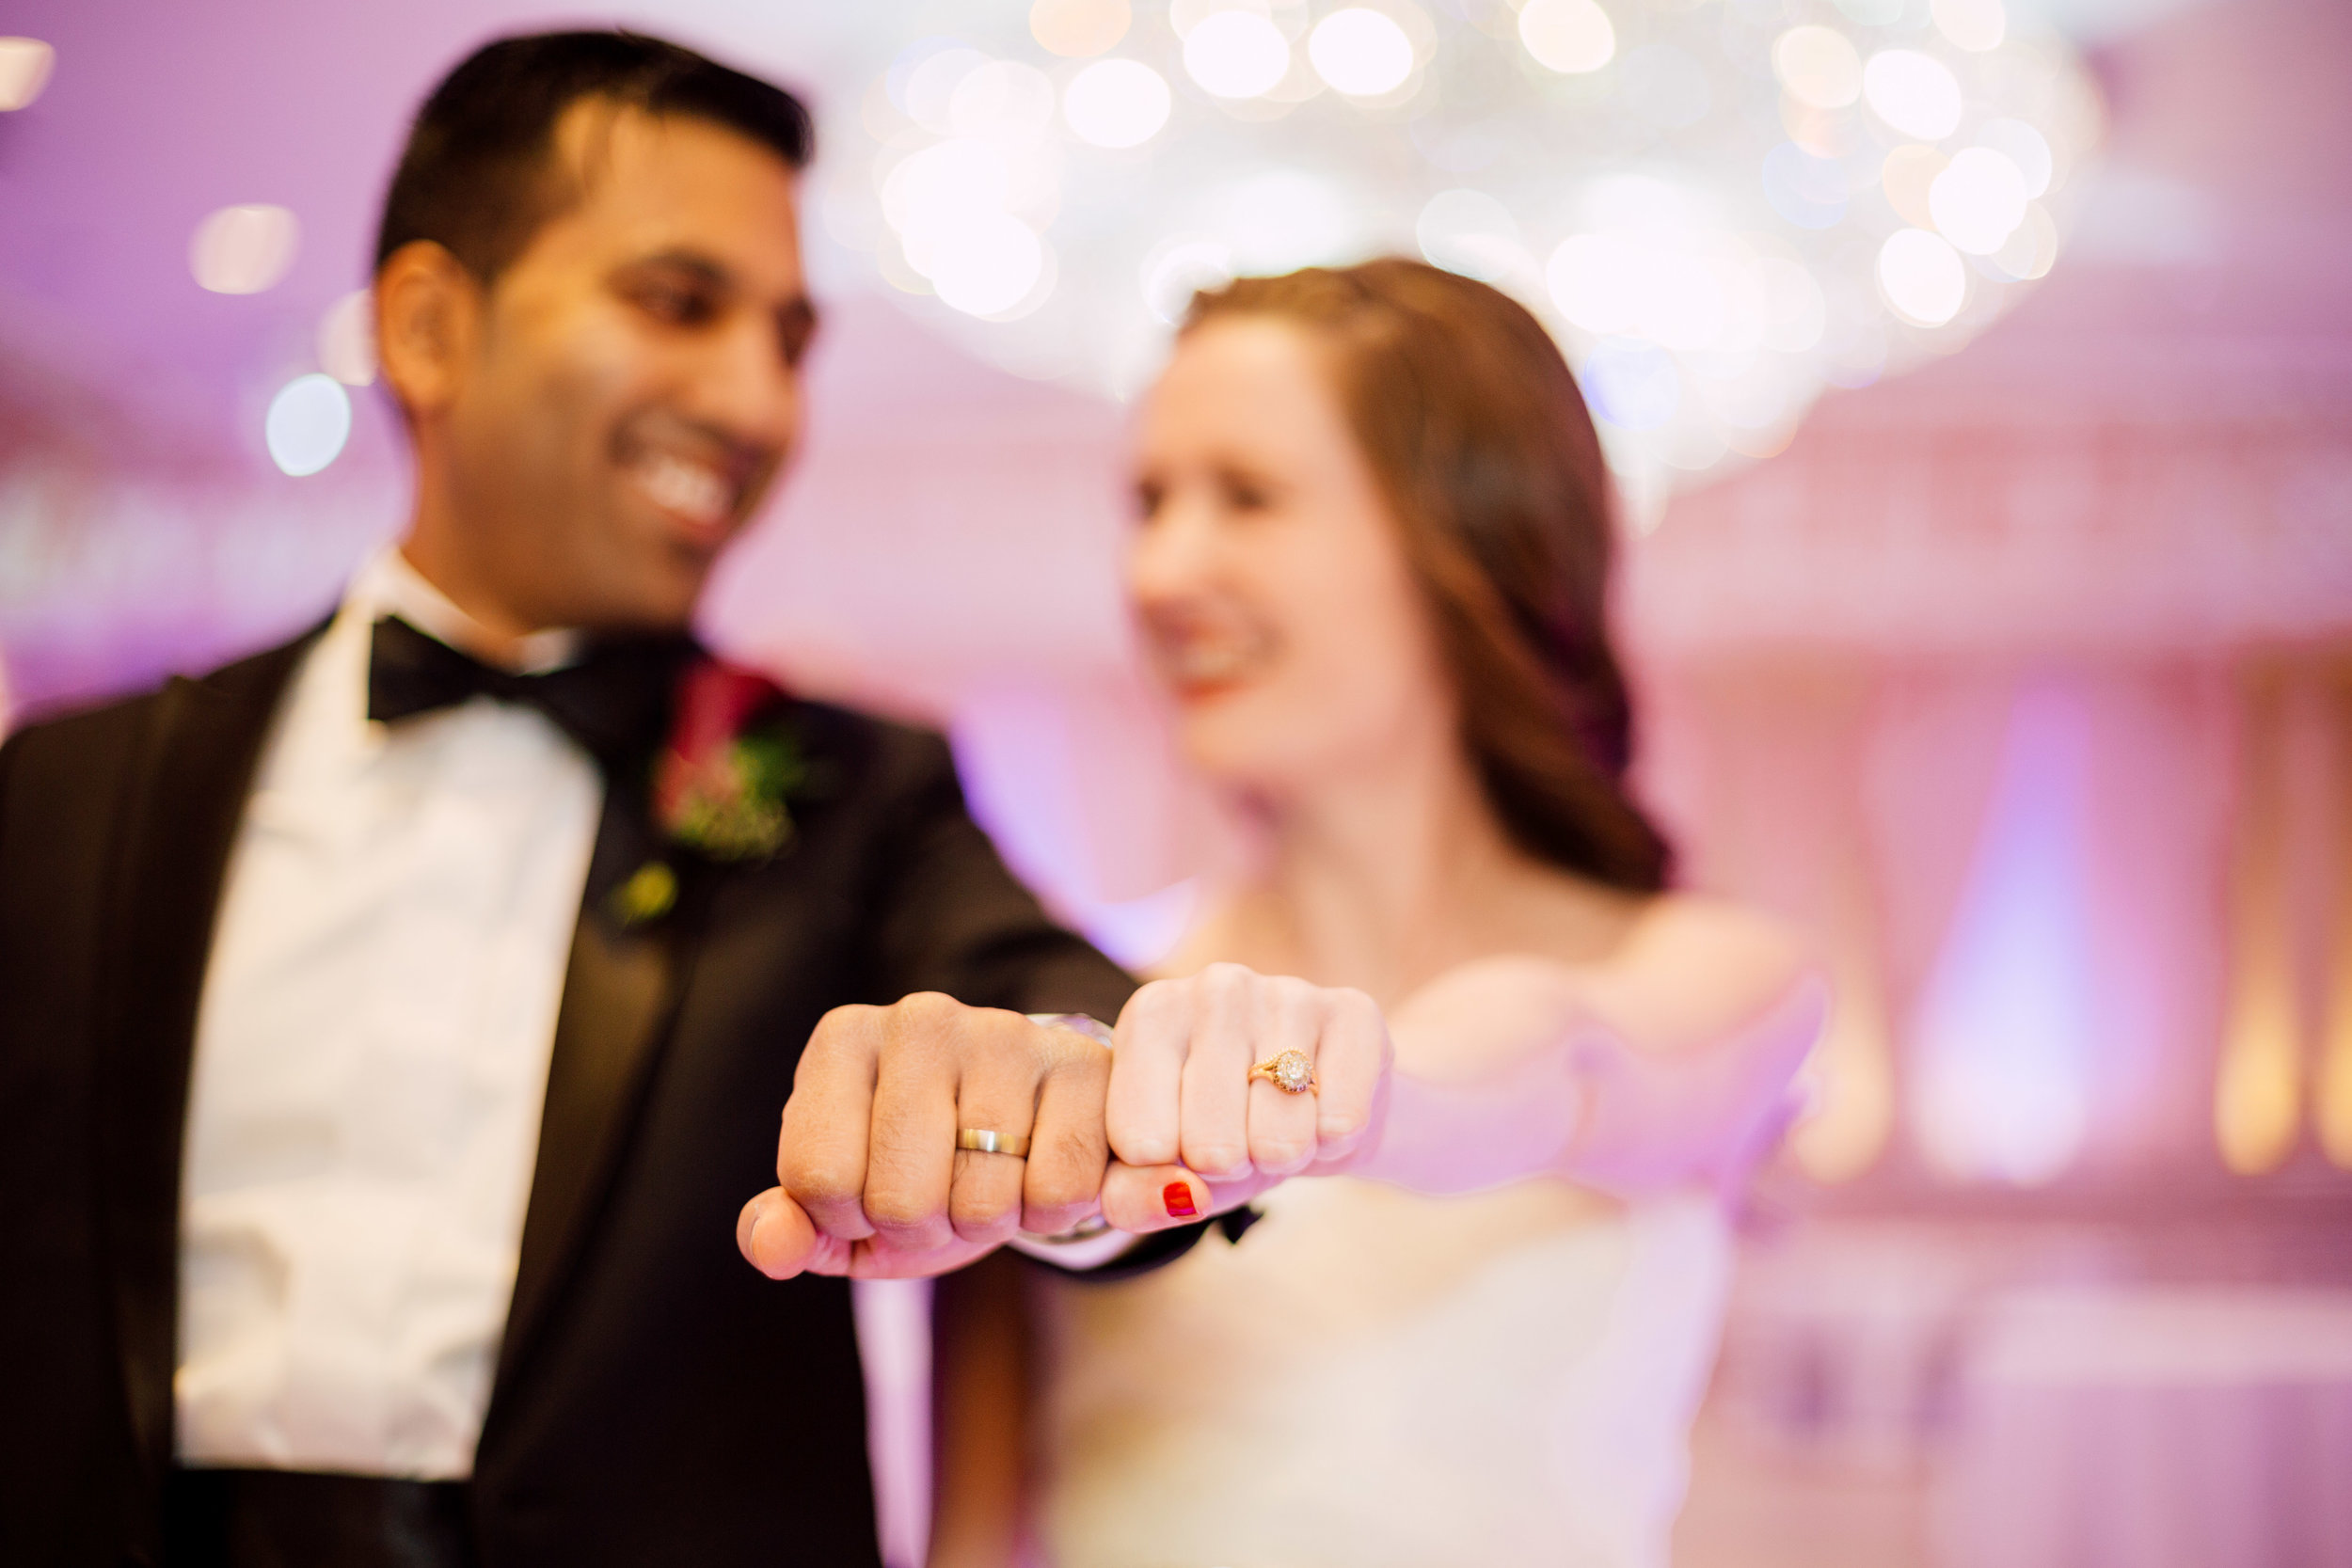 His and hers rings at a toronto wedding